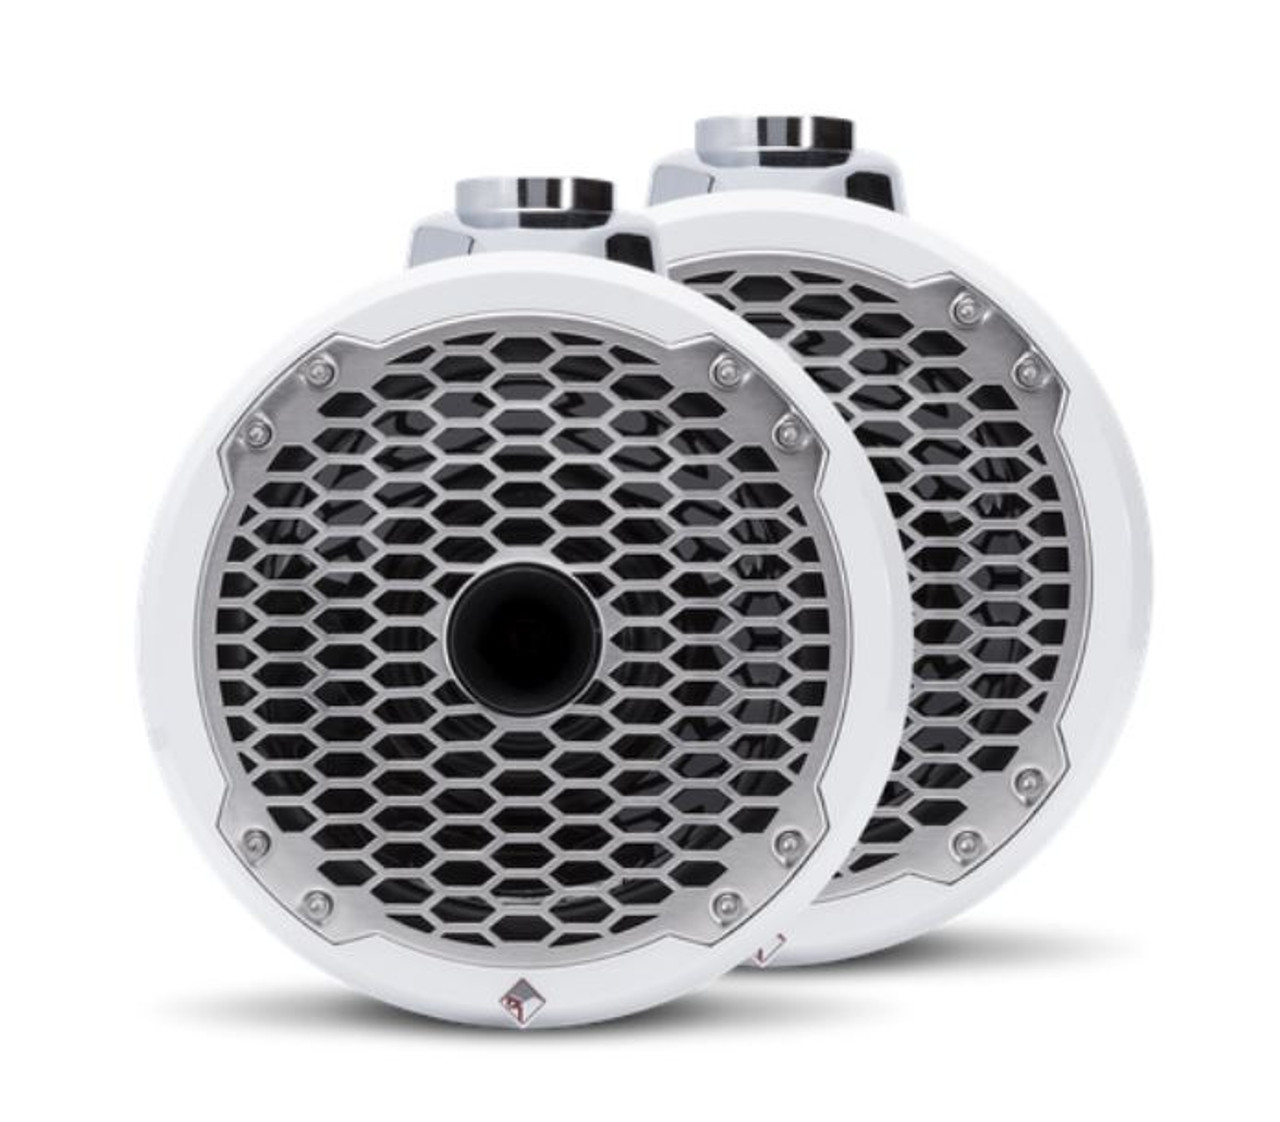 """The PM282HW is a Punch 8"""" 2-way wakeboard tower speaker enclosure featuring a high output horn tweeter and marine grade weather proofing technologies. Supplied in all white with a stainless steel sport grille."""